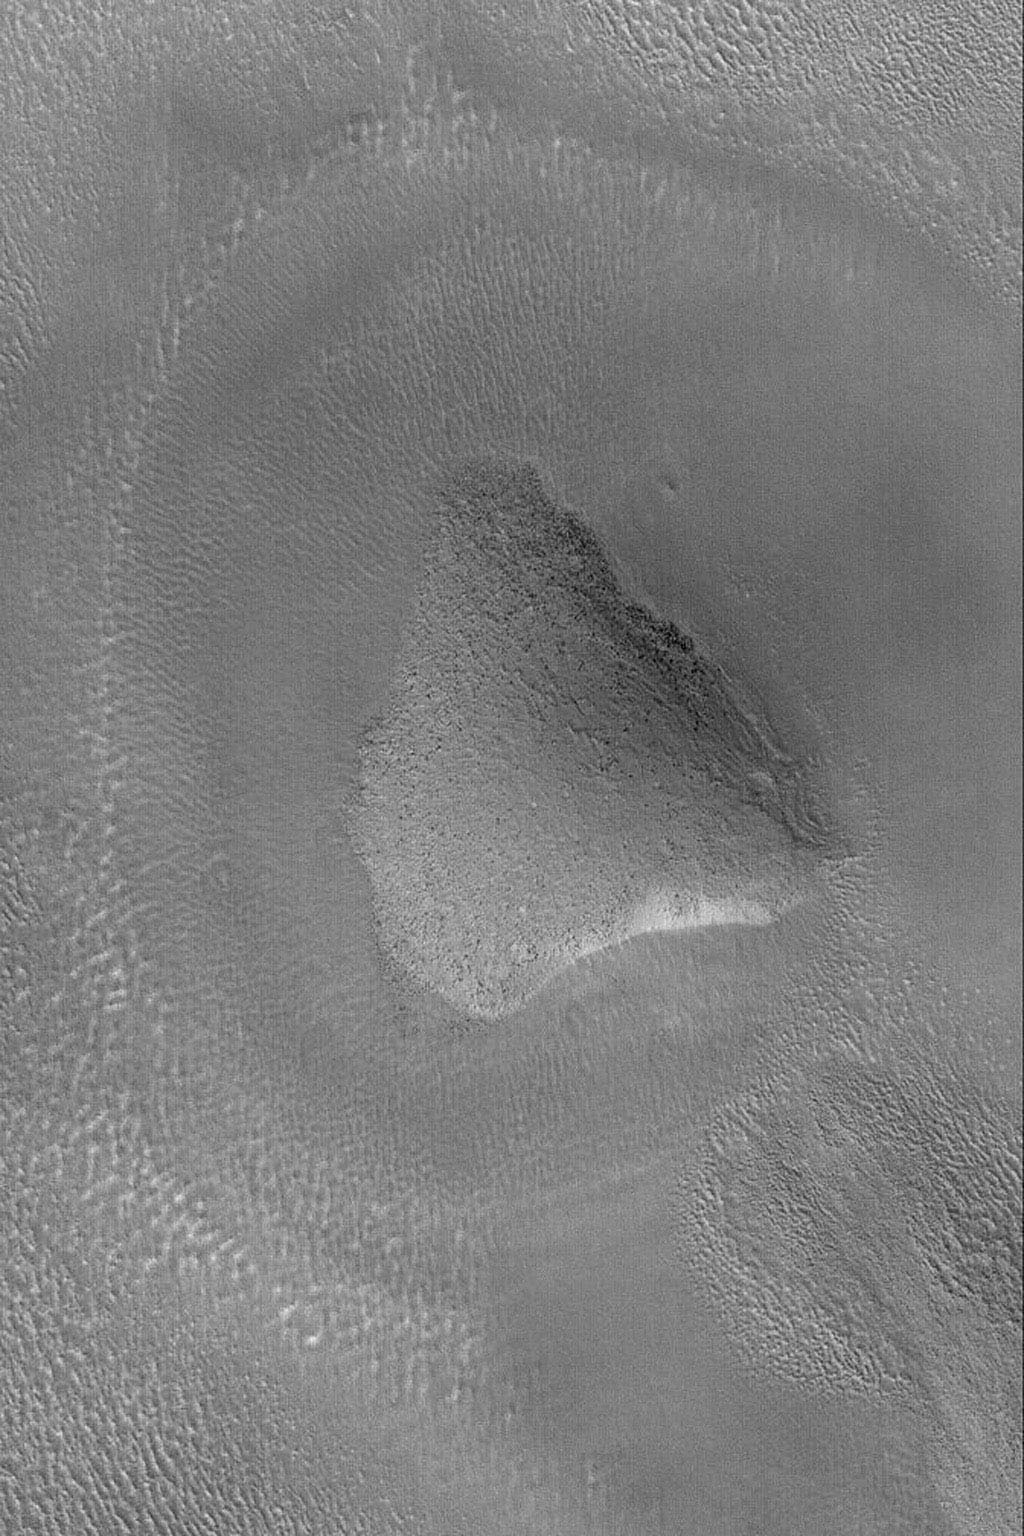 NASA's Mars Global Surveyor shows a rounded knob in the Propontis region of Mars. Dark dots on the hilltop and slopes are house-sized (and larger) boulders.